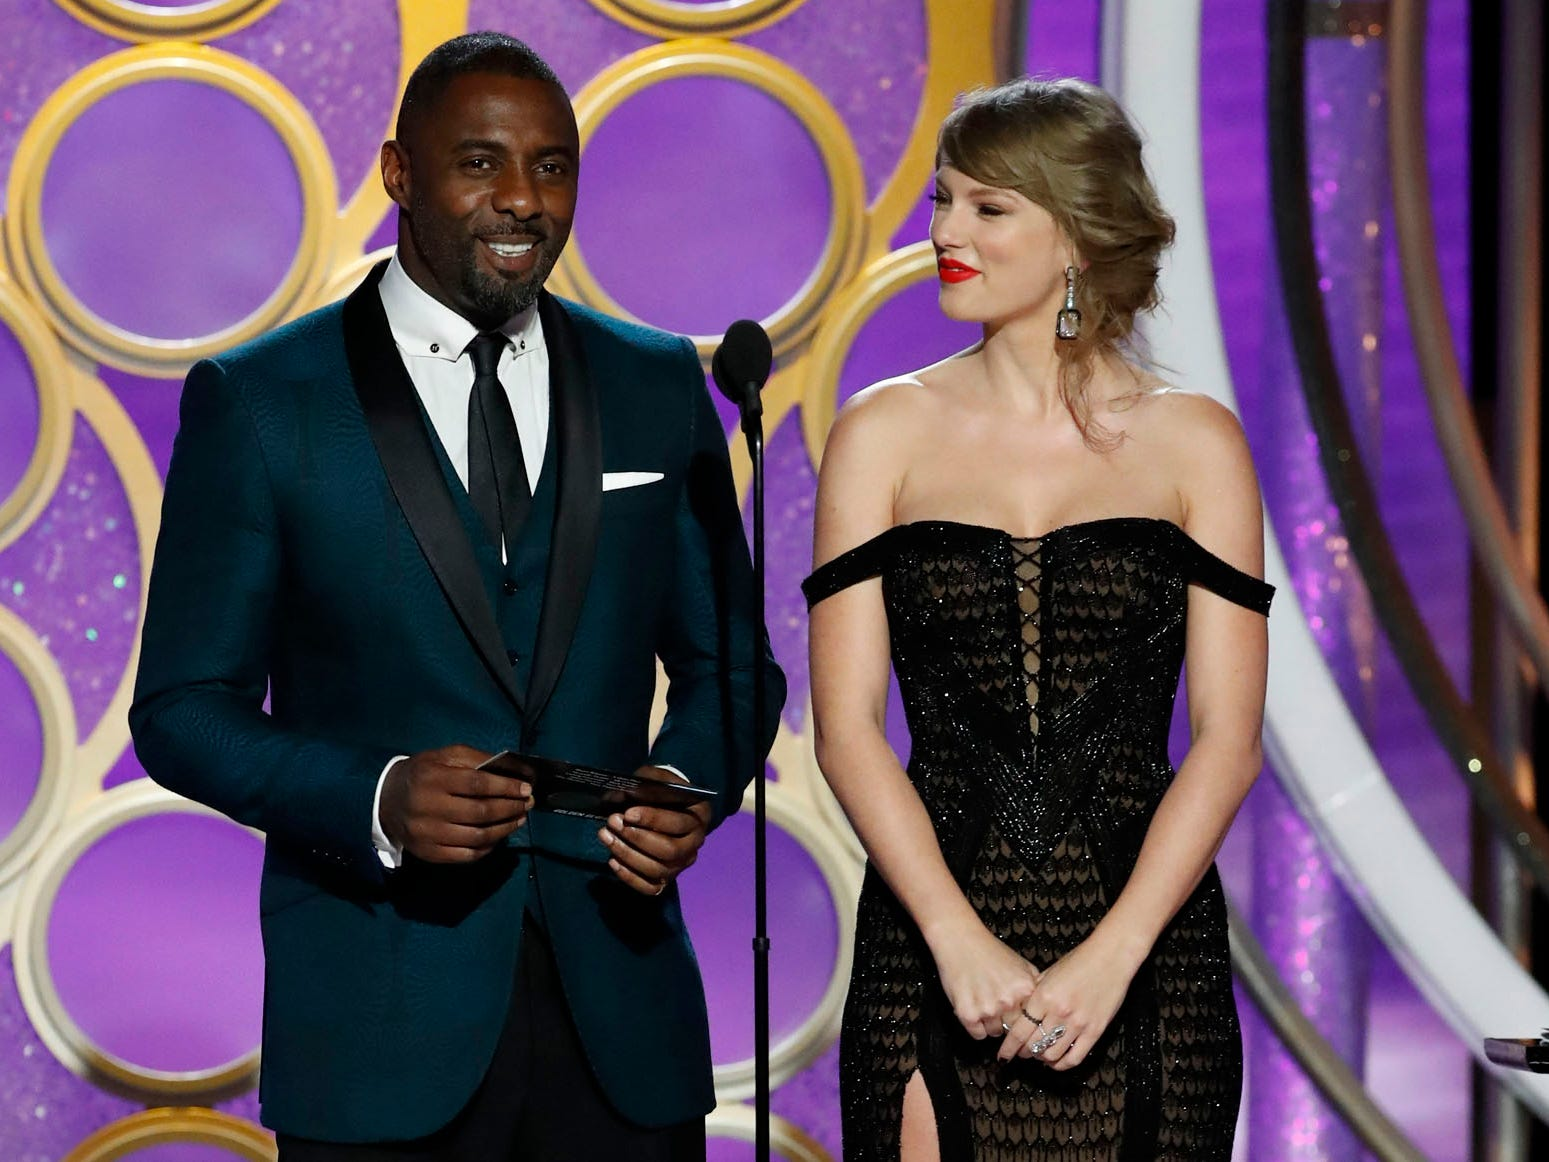 Idris Elba and Taylor Swift present during the 76th Golden Globe Awards.